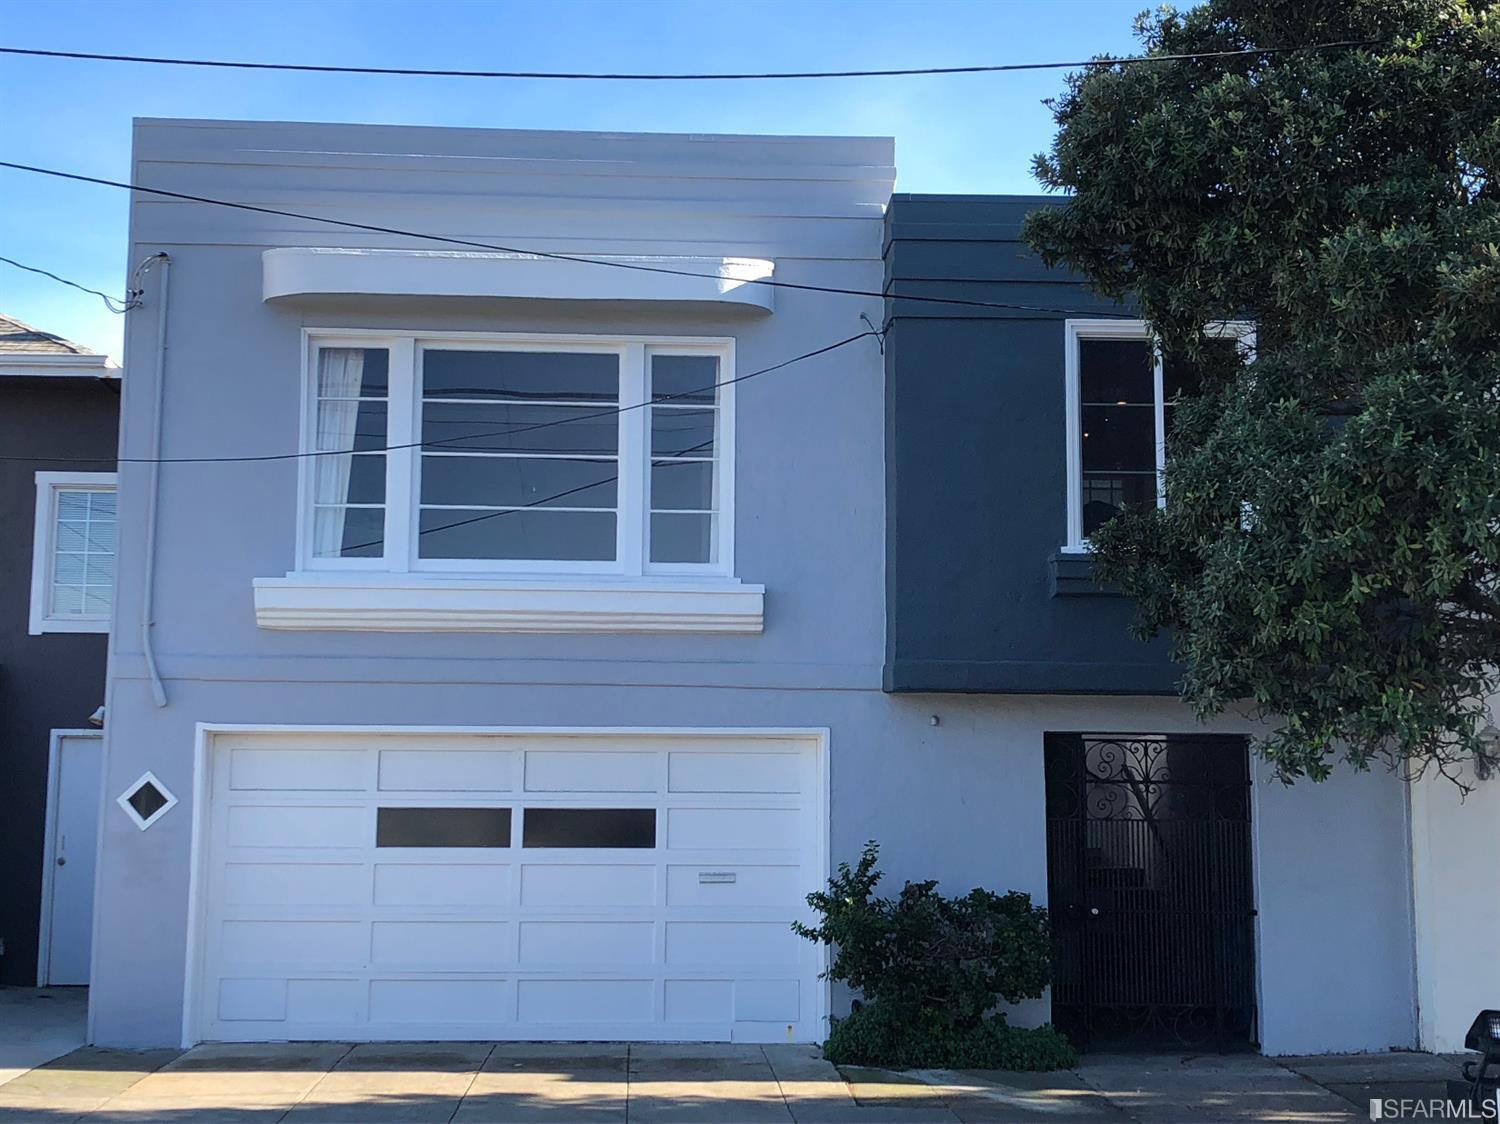 SOLD   784 48th Ave   $1,300,000 … and the Perfect Storm